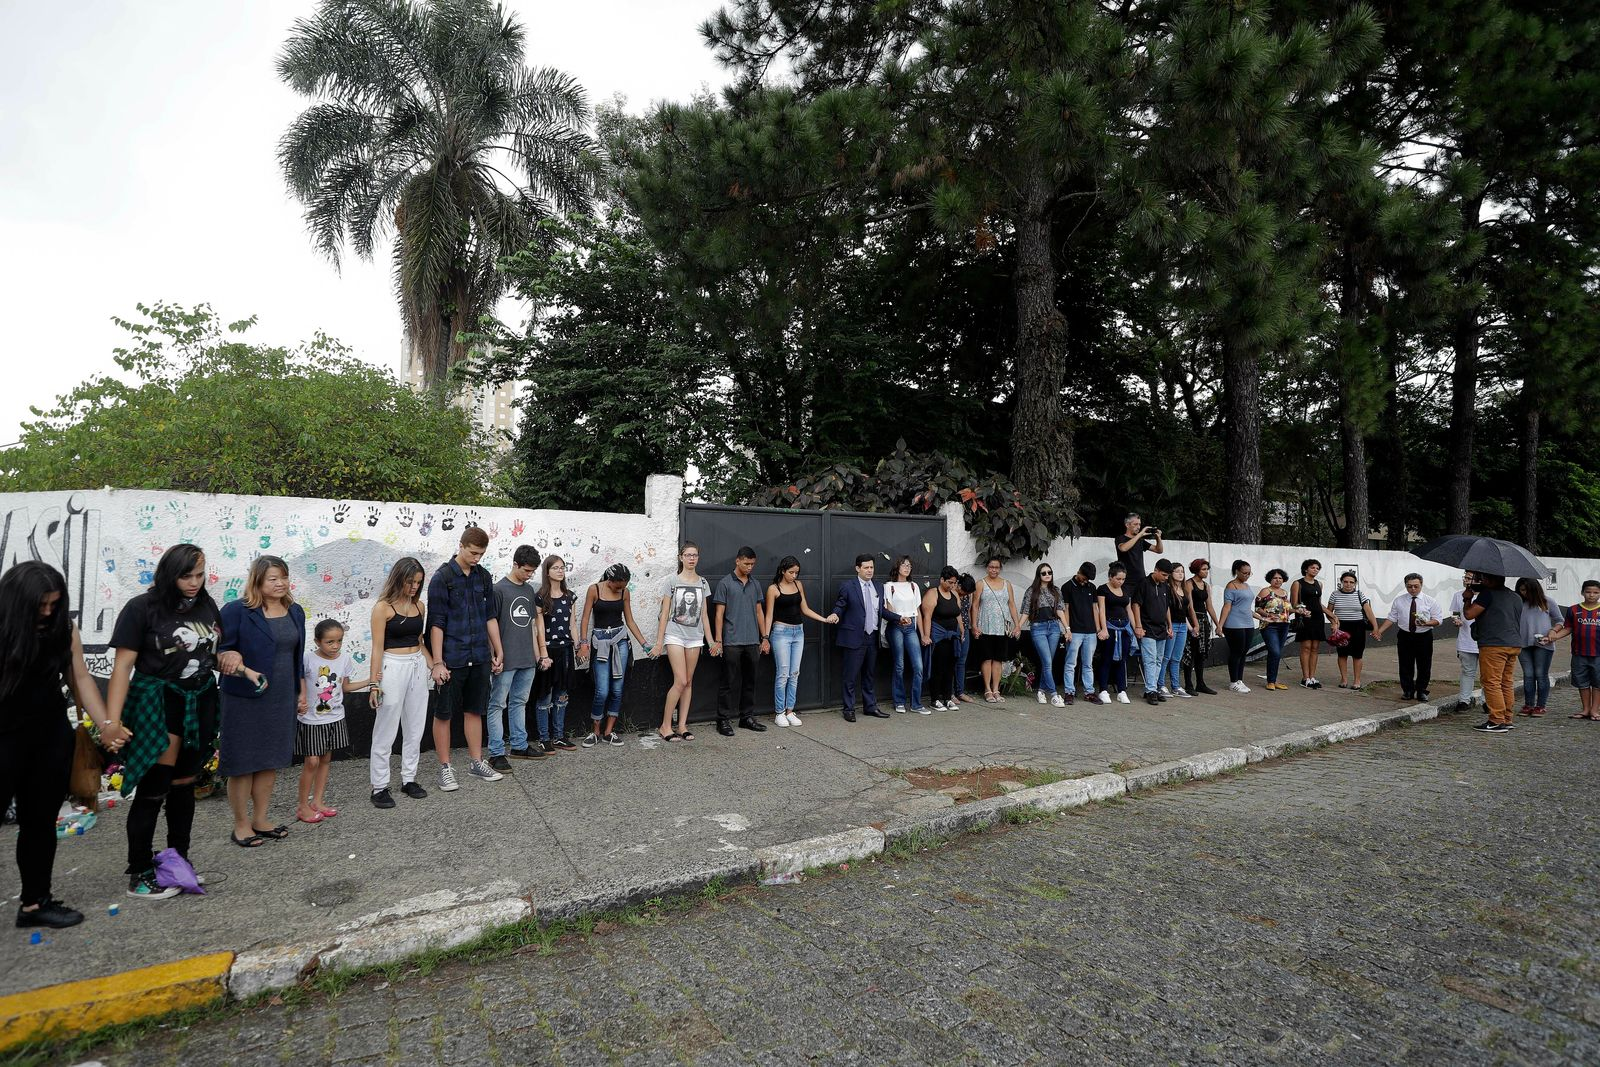 Students, relatives and neighborhood residents, pray outside the Raul Brasil State School one day after a mass shooting, in Suzano, Brazil, Thursday, March 14, 2019. (AP Photo/Andre Penner)